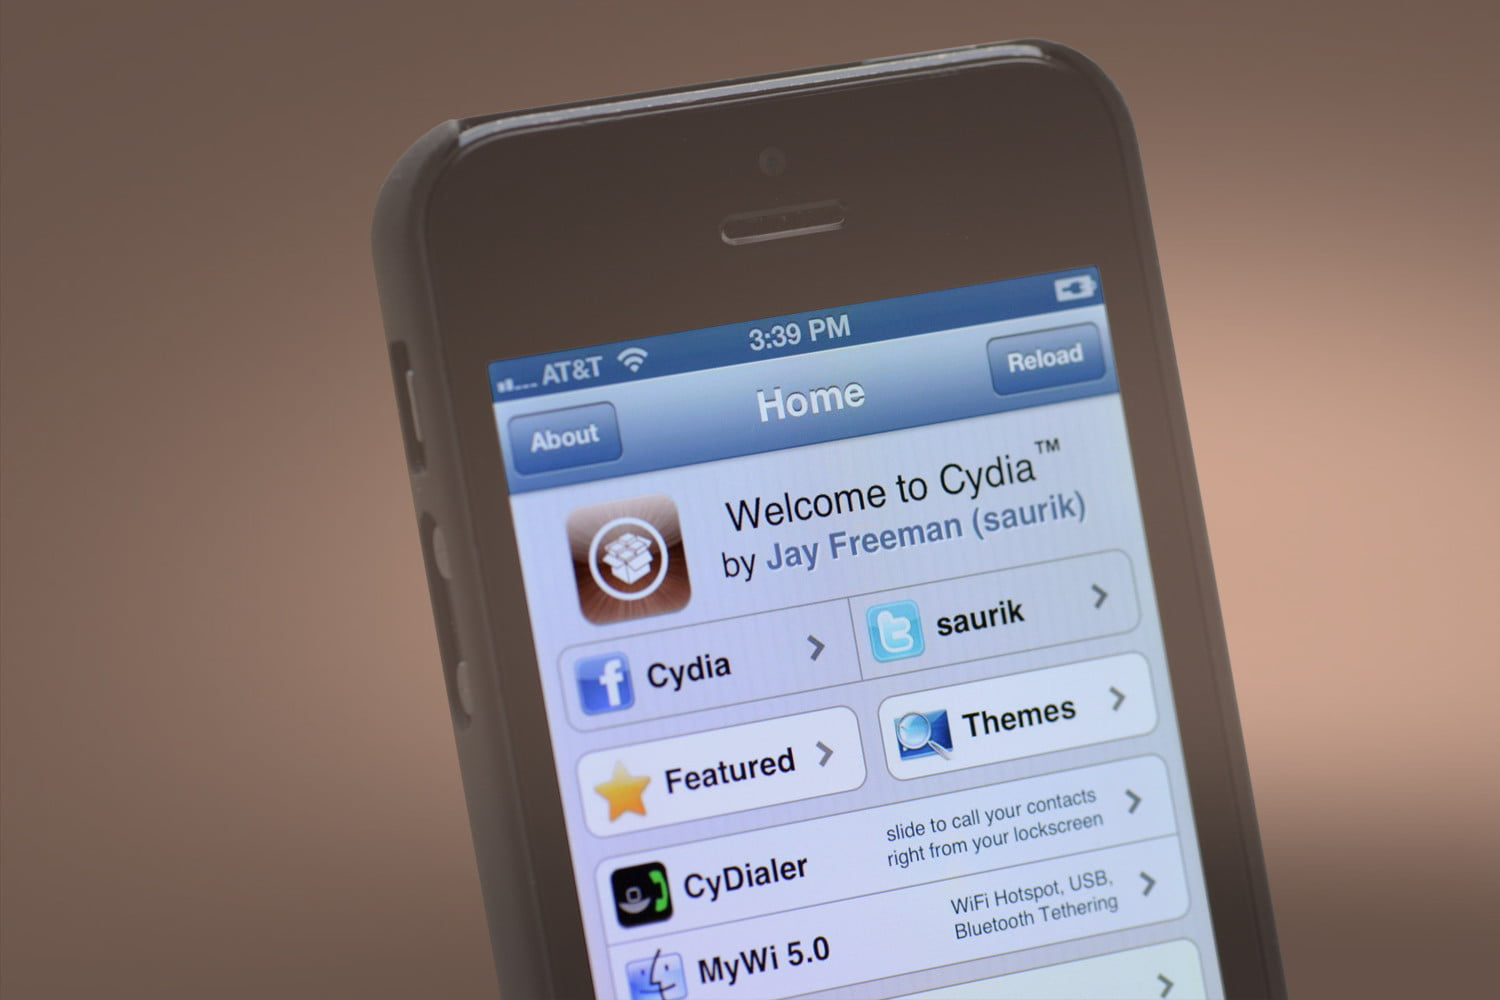 iOS Jailbreak App Store Cydia No Longer Allows Purchasing | Digital